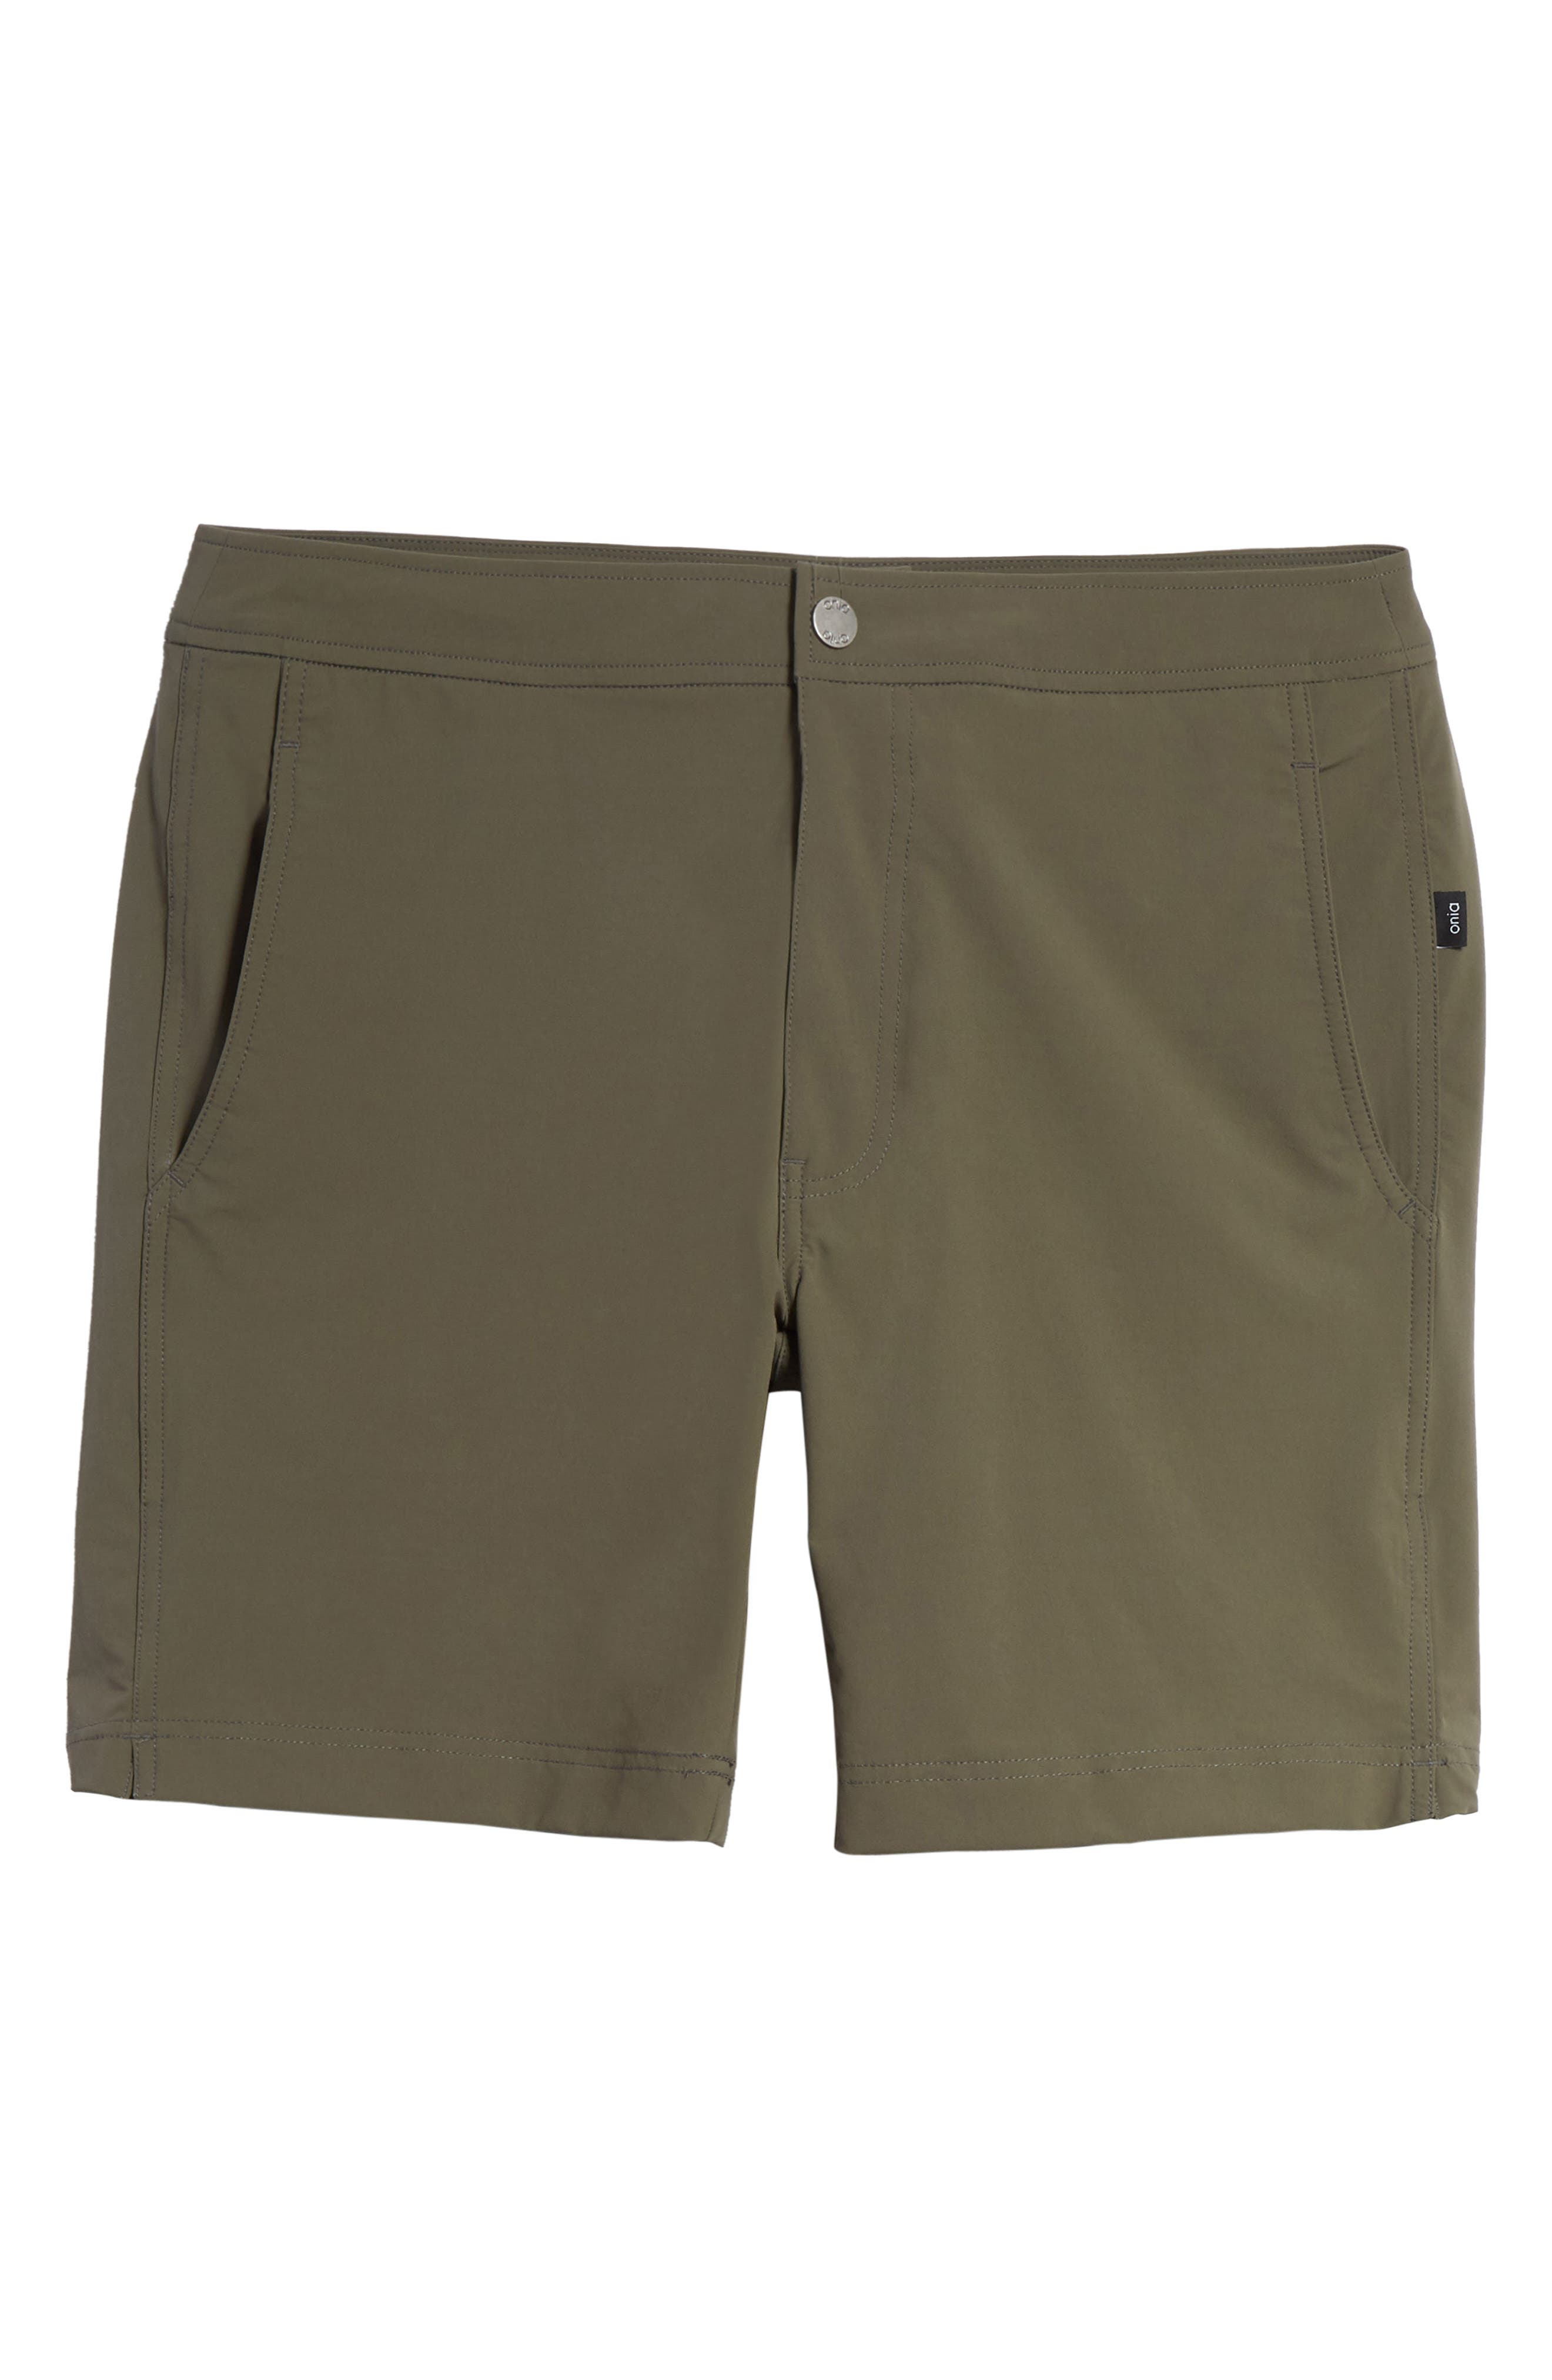 Calder Swim Trunks,                             Alternate thumbnail 6, color,                             DEEP SAGE